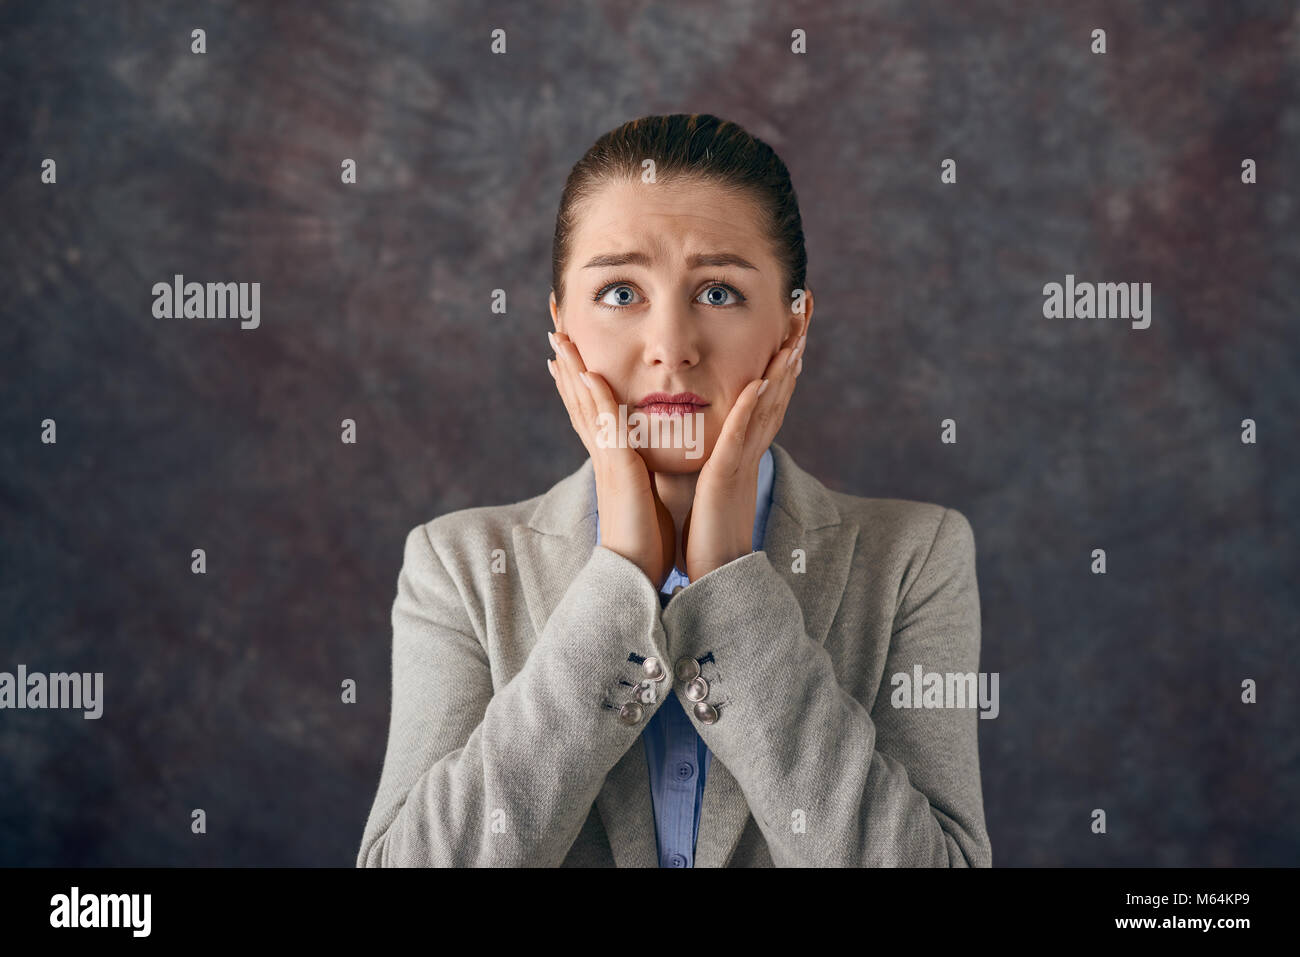 Dismayed upset young woman with her hands to her cheeks staring wide eyed at the camera with a tearful expression - Stock Image